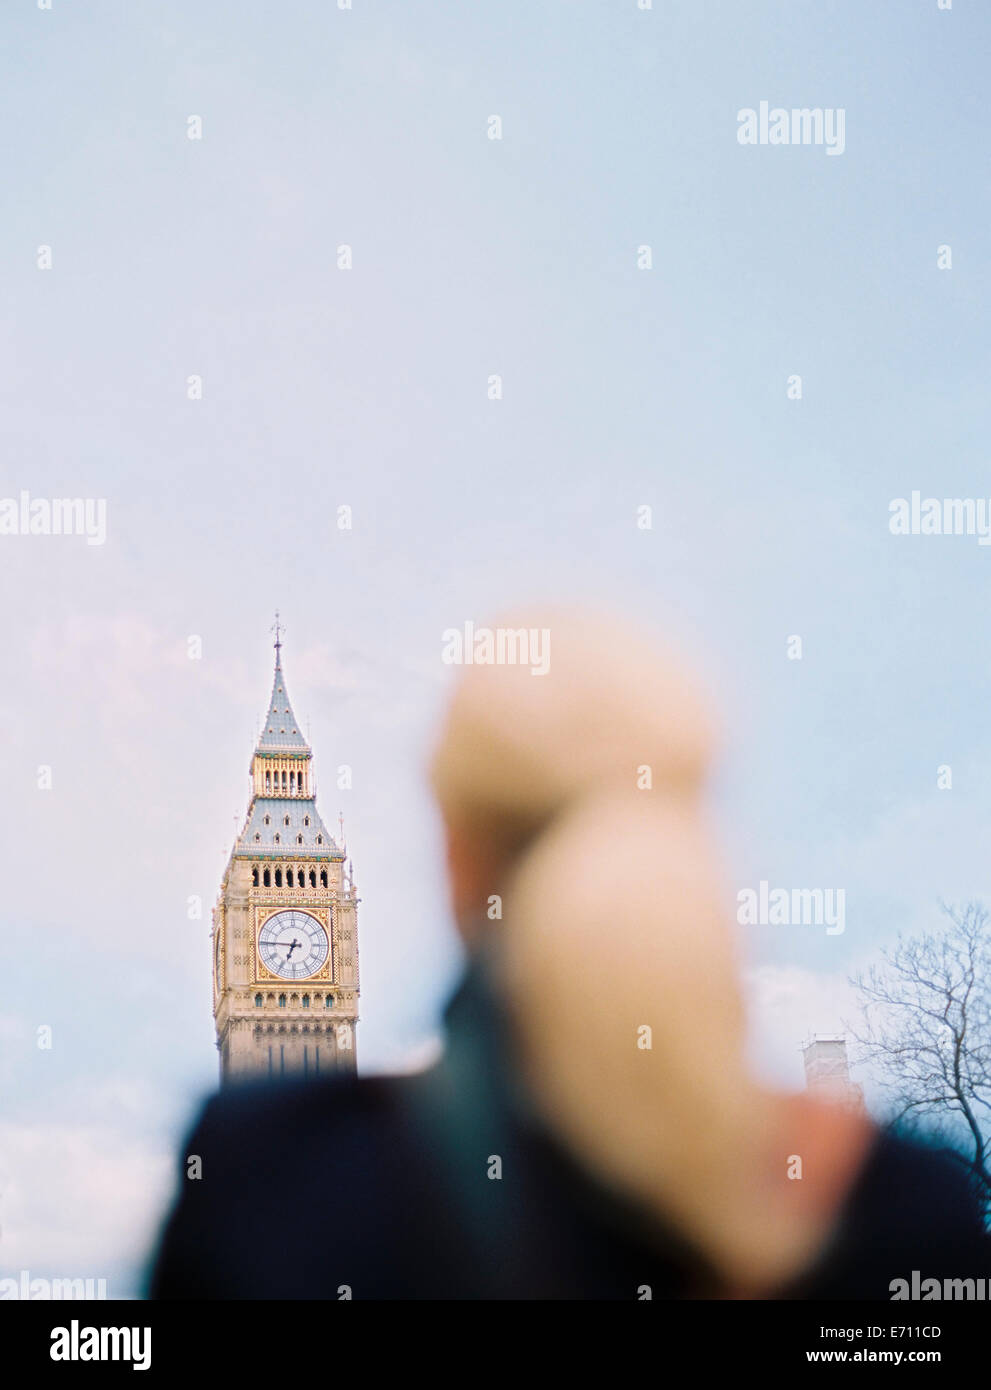 A woman looking up at Big Ben, The Elizabeth Tower at the Houses of Parliament in London. - Stock Image